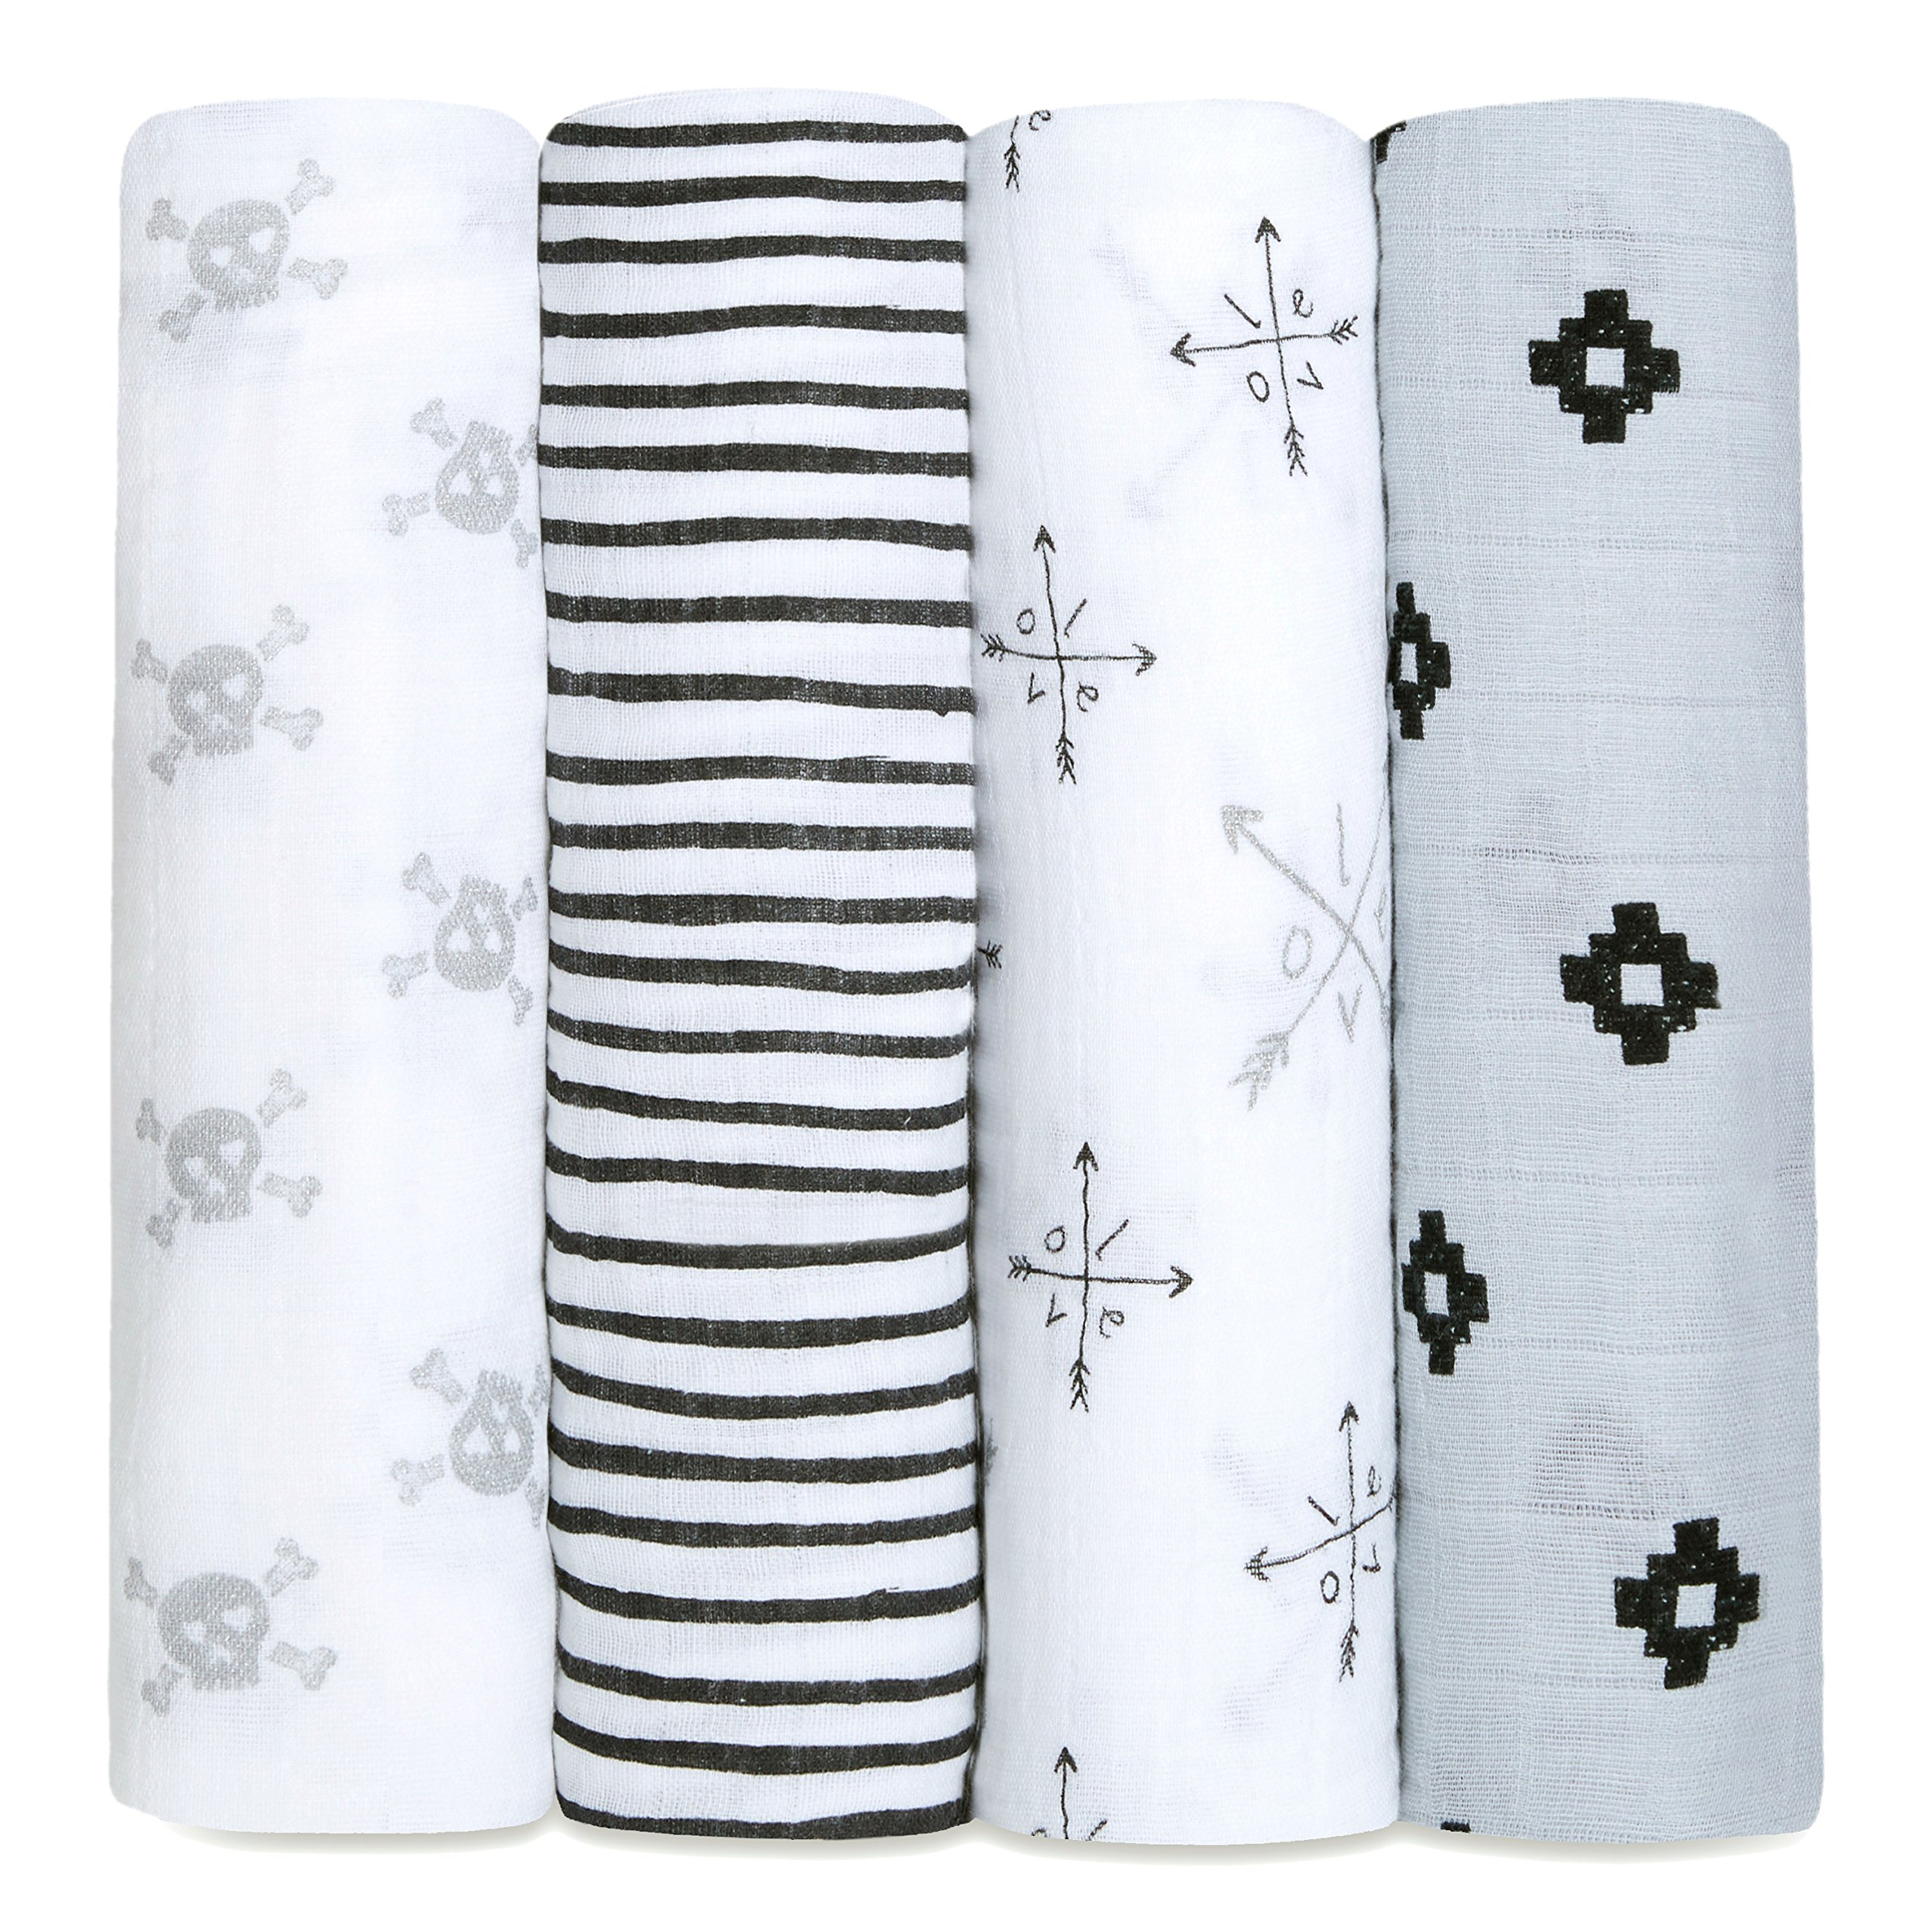 aden + anais Classic Swaddle Baby Blanket, 100% Cotton Muslin, Large 47 X 47 inch, 4 Pack, Lovestruck, Skulls/Arrows / LOVE